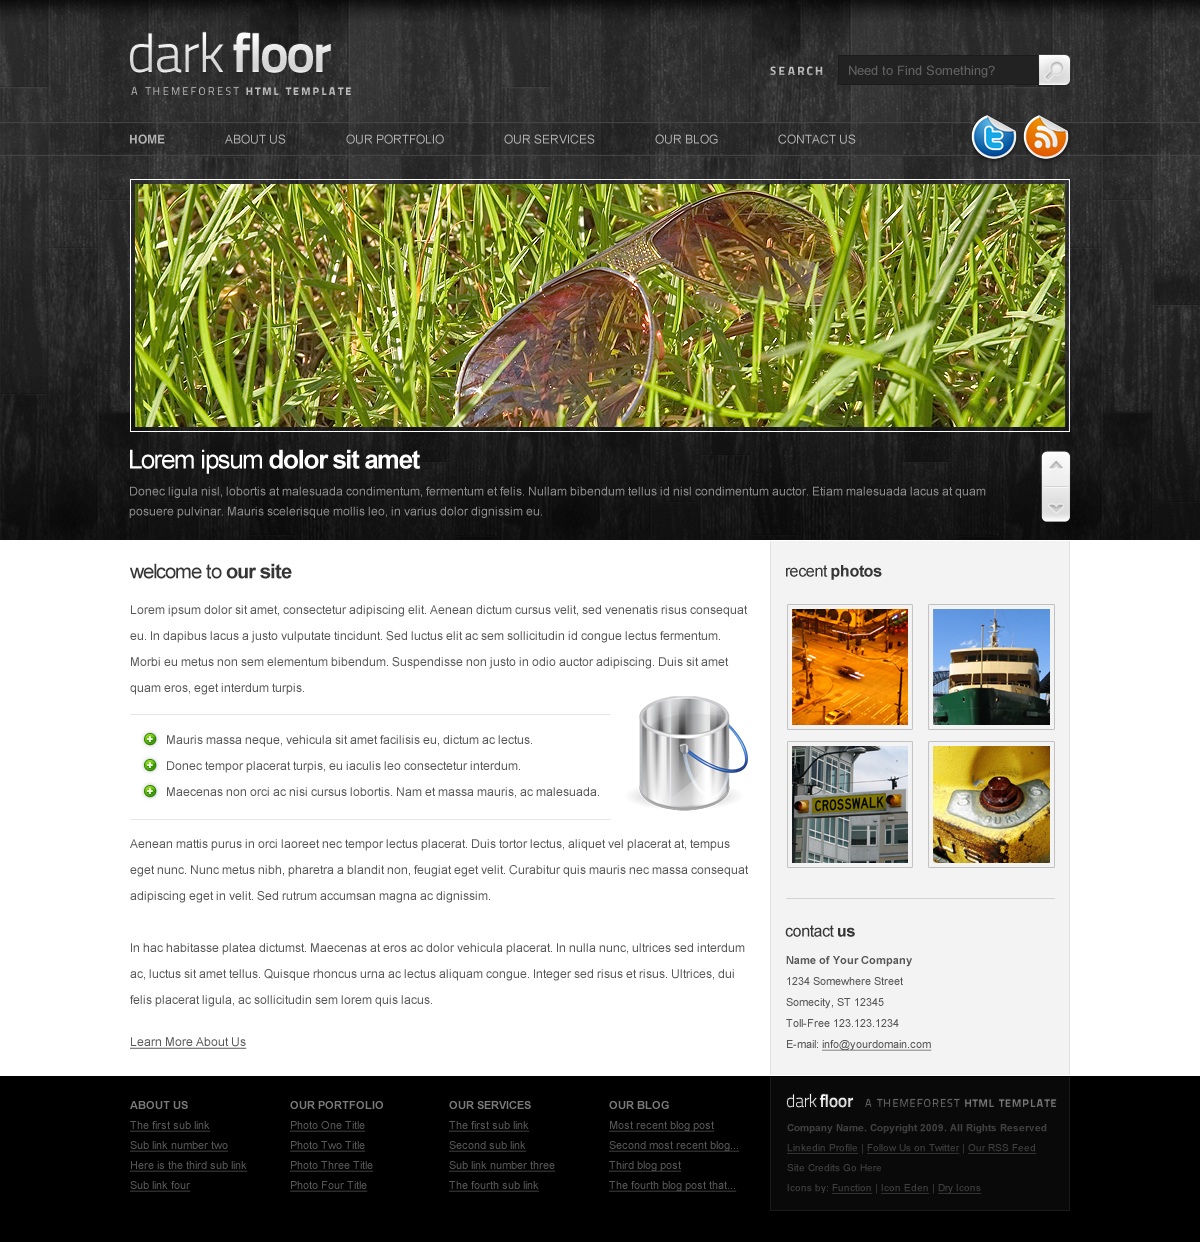 Free Download Dark Floor HTML Template - 6 Pages, 7 Colors Nulled Latest Version